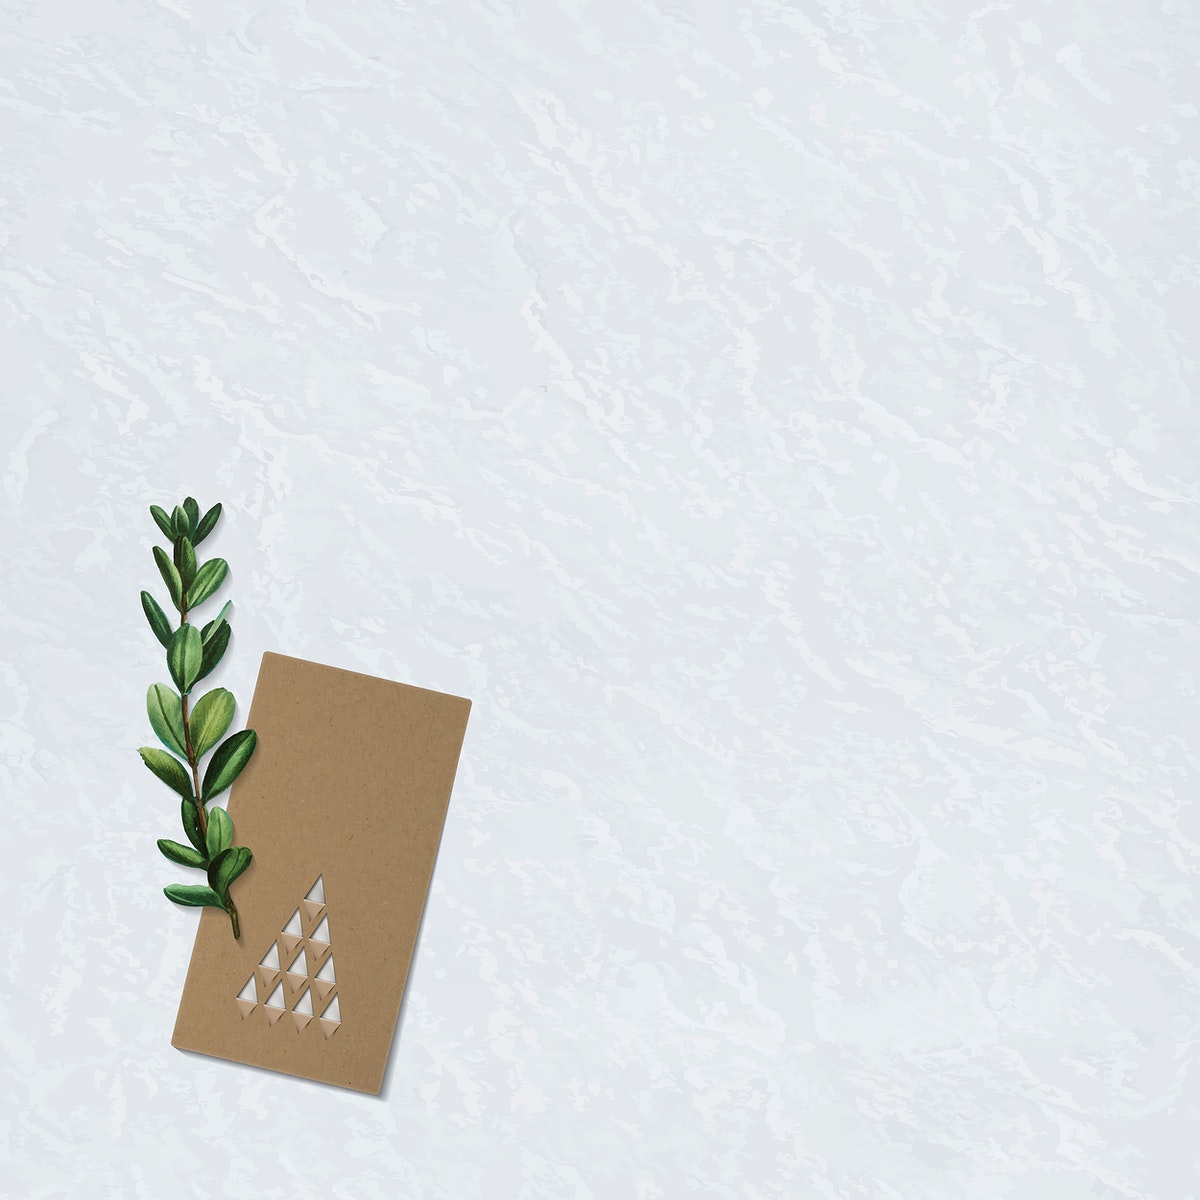 Paper cut Christmas tree greeting card design with leaves on black background vector